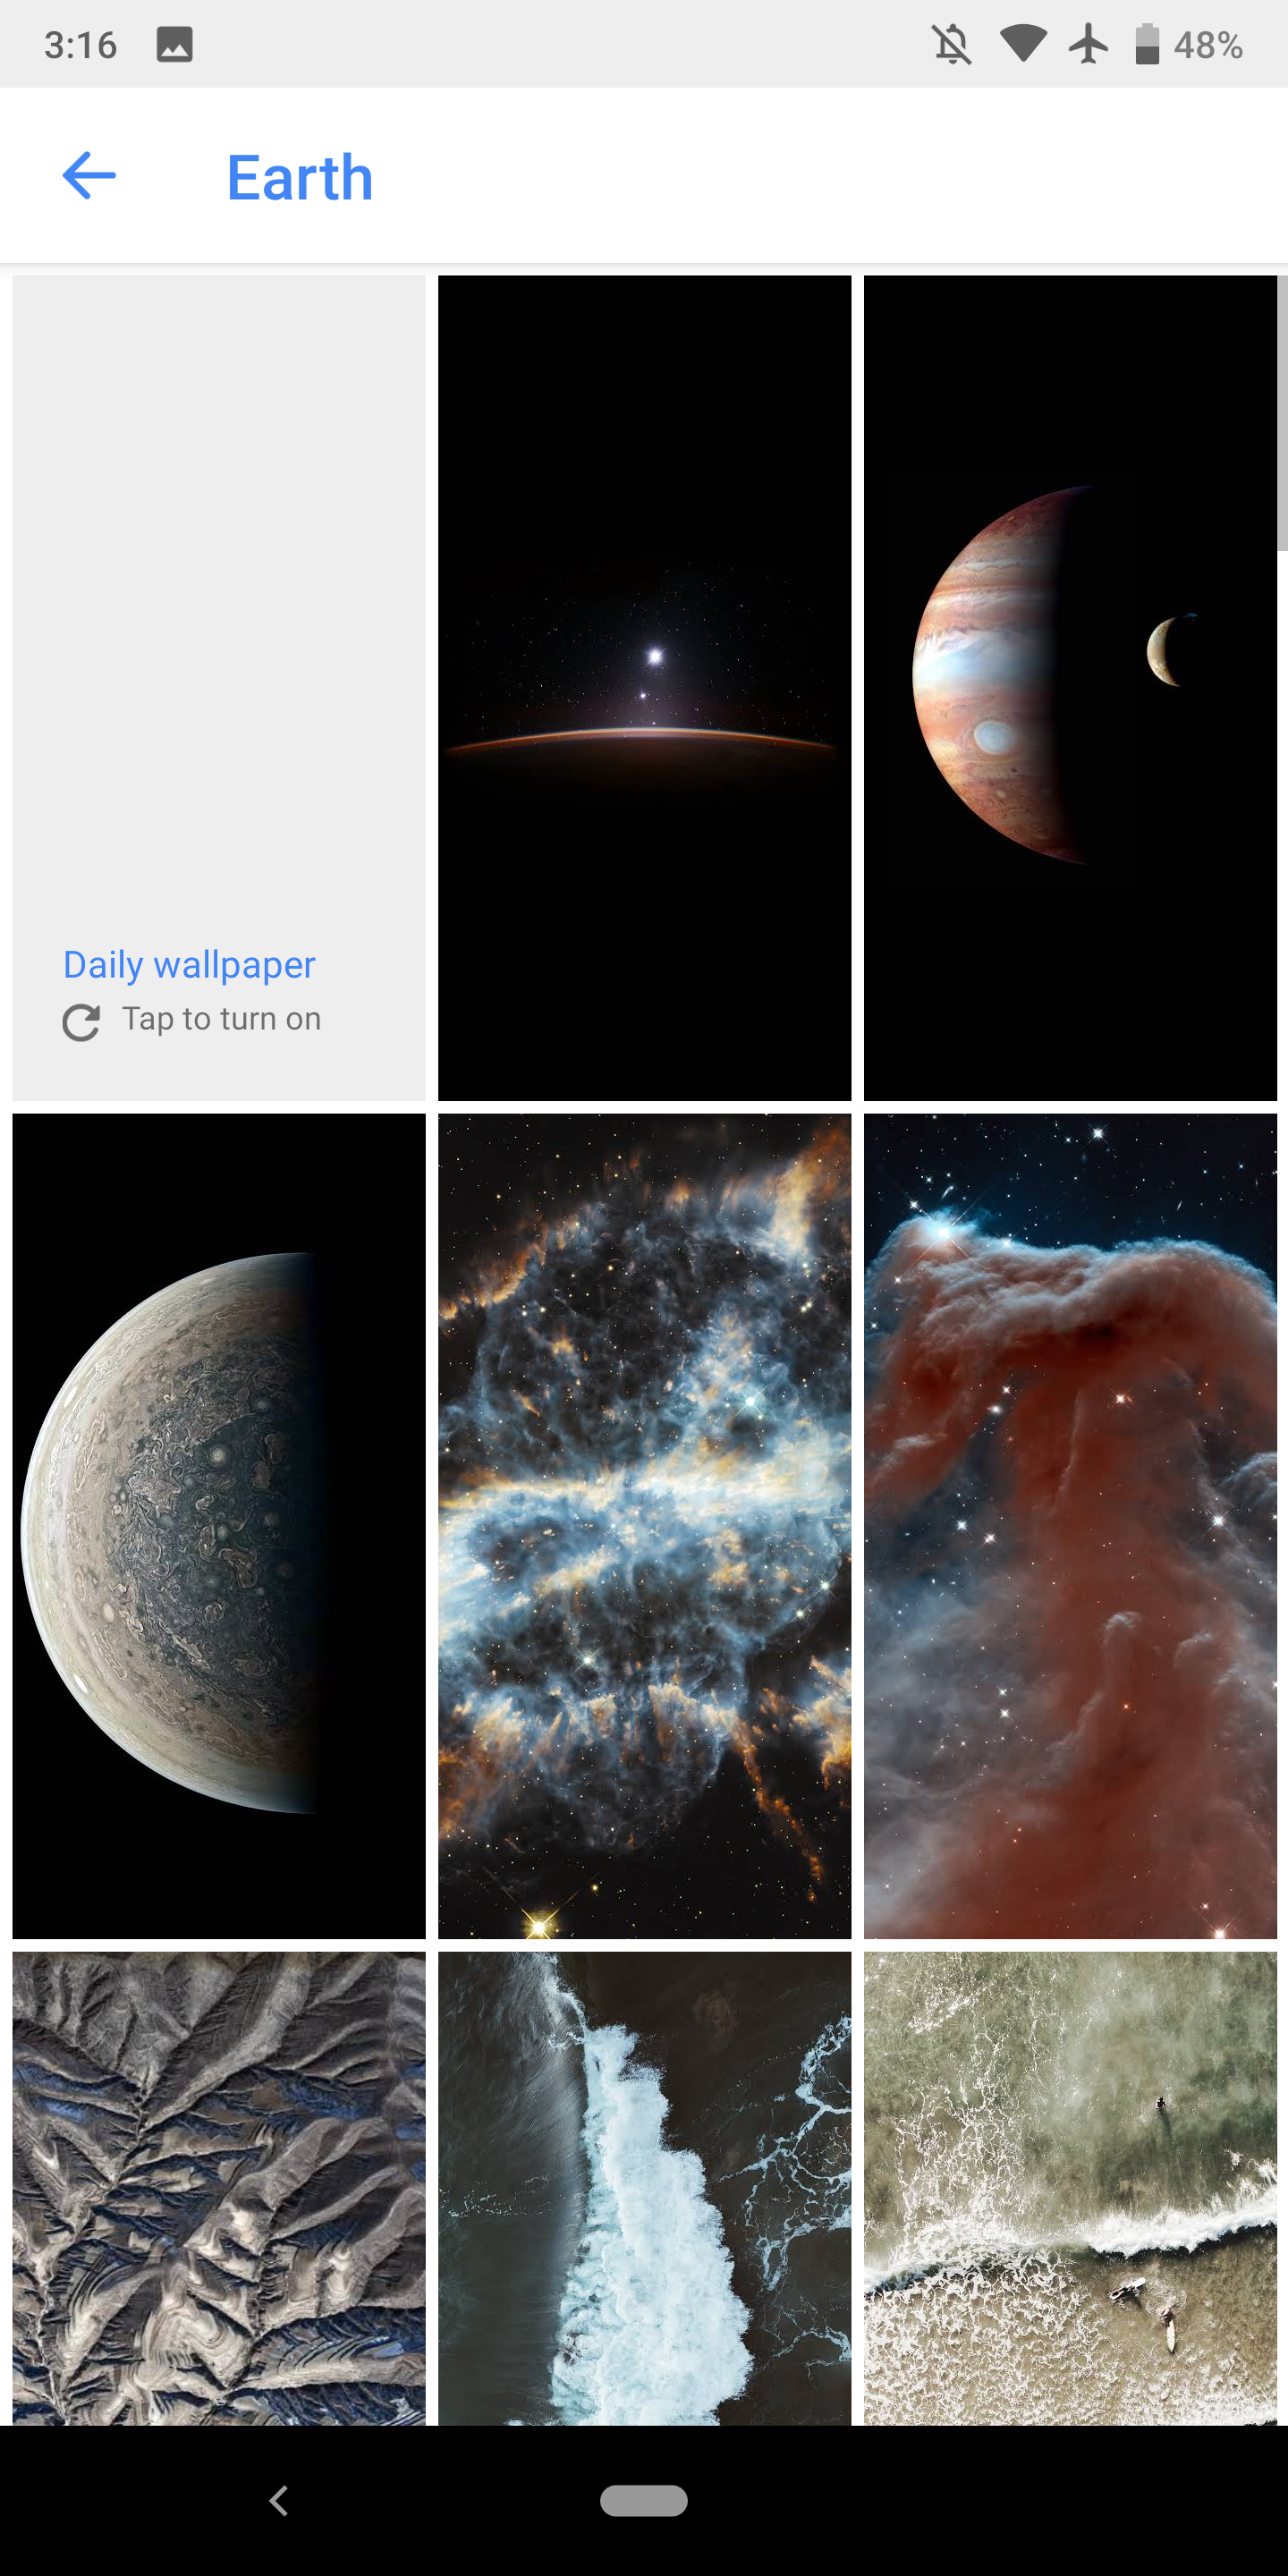 ... be available the next time you open the Wallpapers app. The new Google Wallpapers are available on both Pixel phones and every other Android device that ...